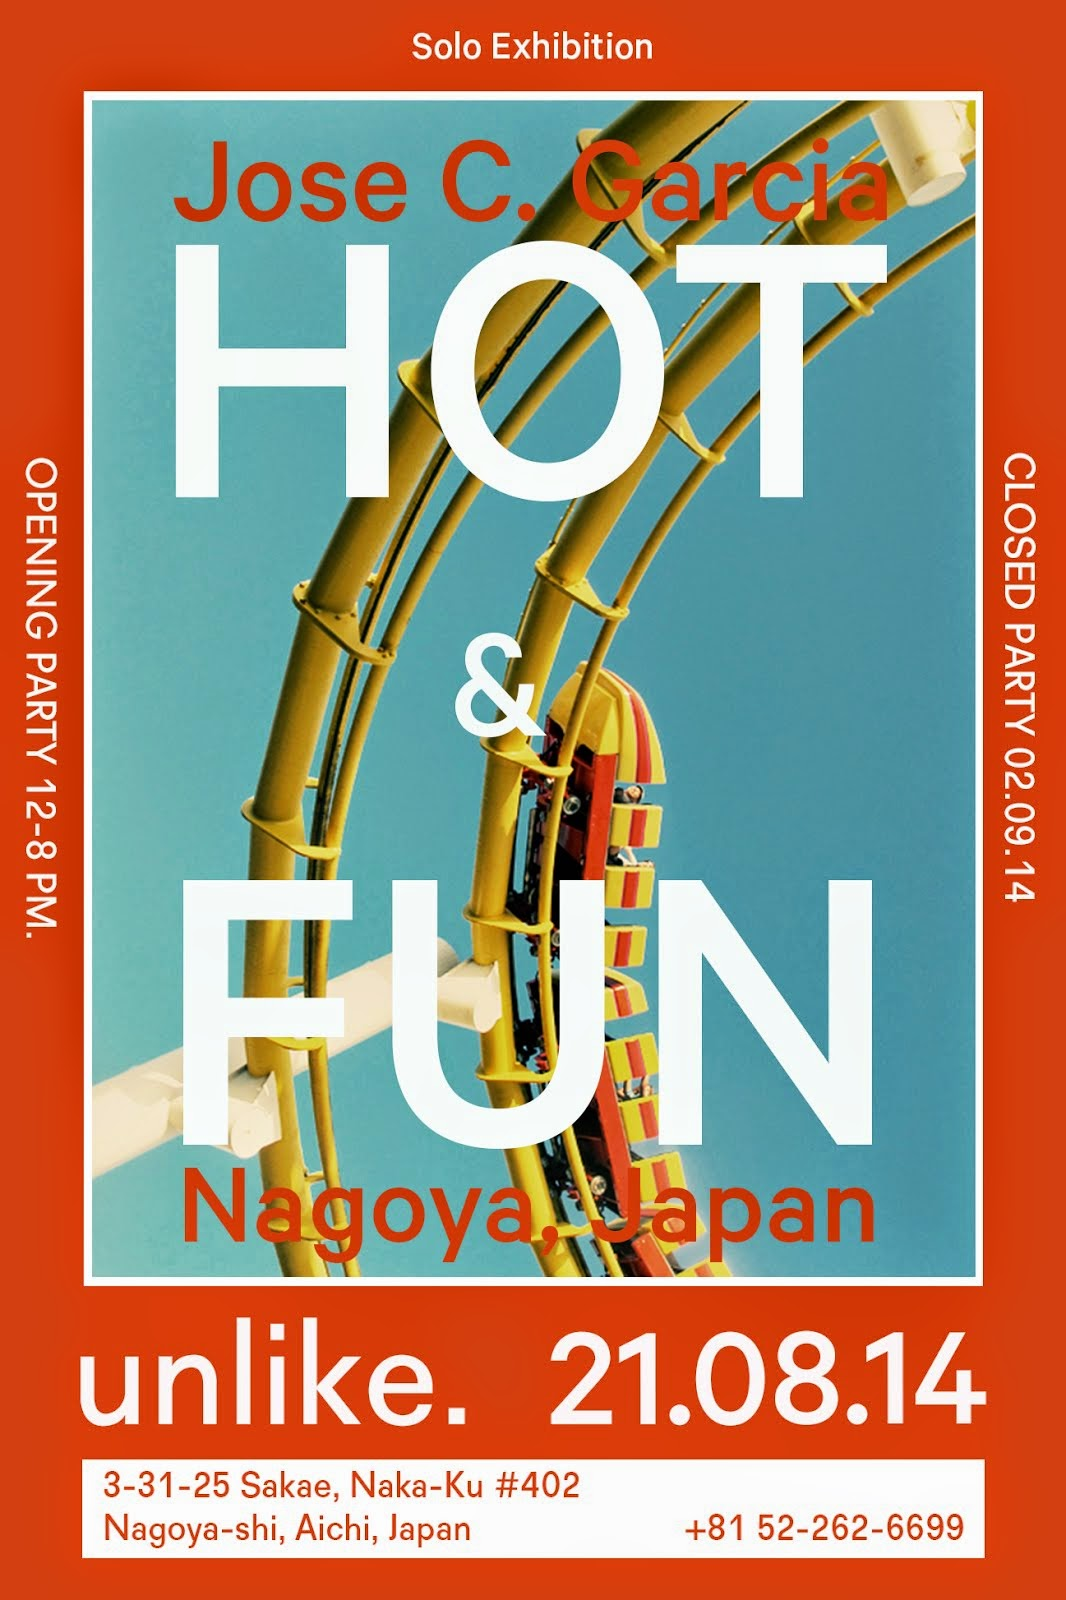 Jose C. Garcia Solo Exhibition ~HOT & FUN~ 2014 8/21 - 9/2